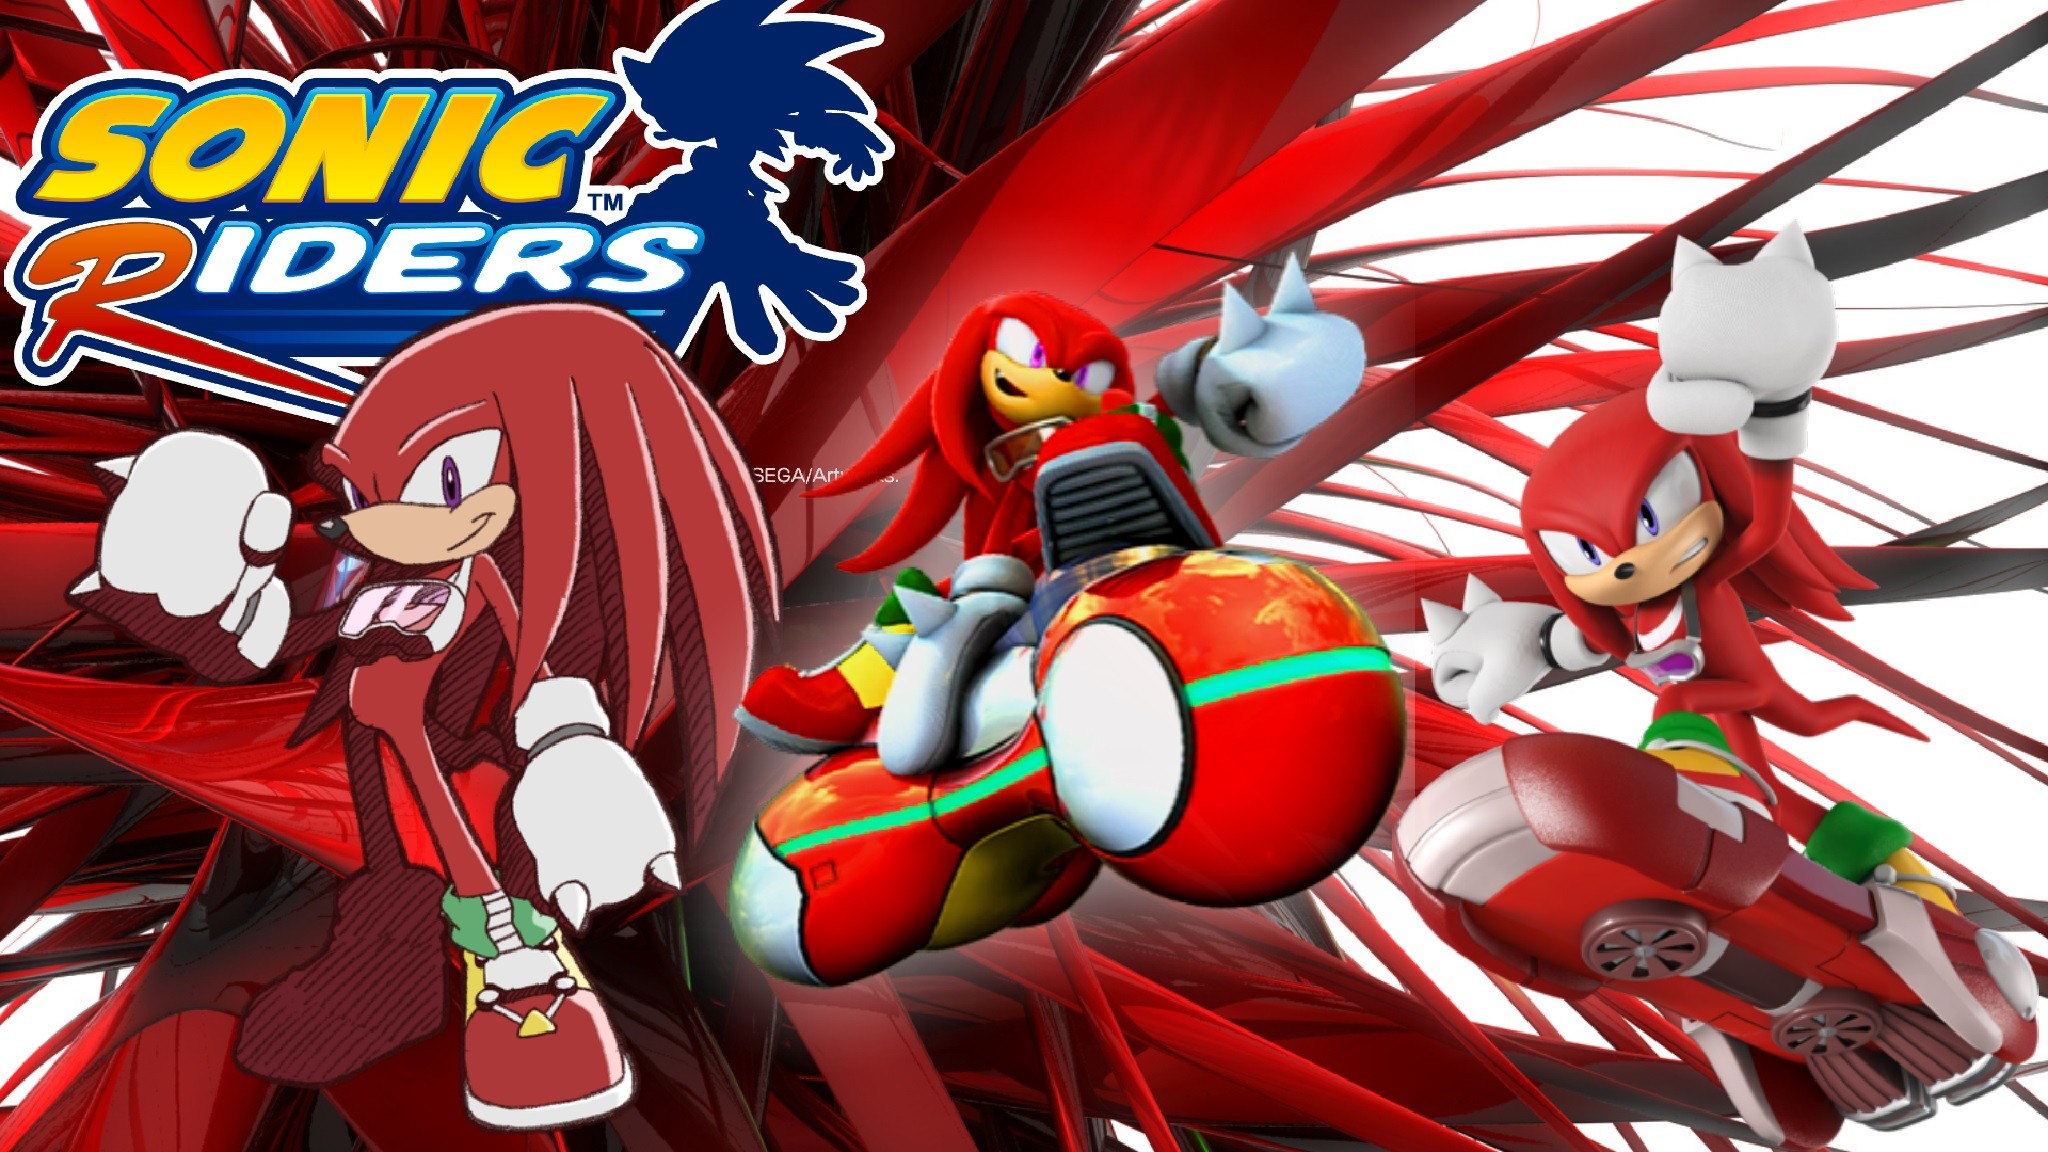 Sonic Riders Knuckles by ShadowTheHedgehog24 Sonic Riders Knuckles by  ShadowTheHedgehog24